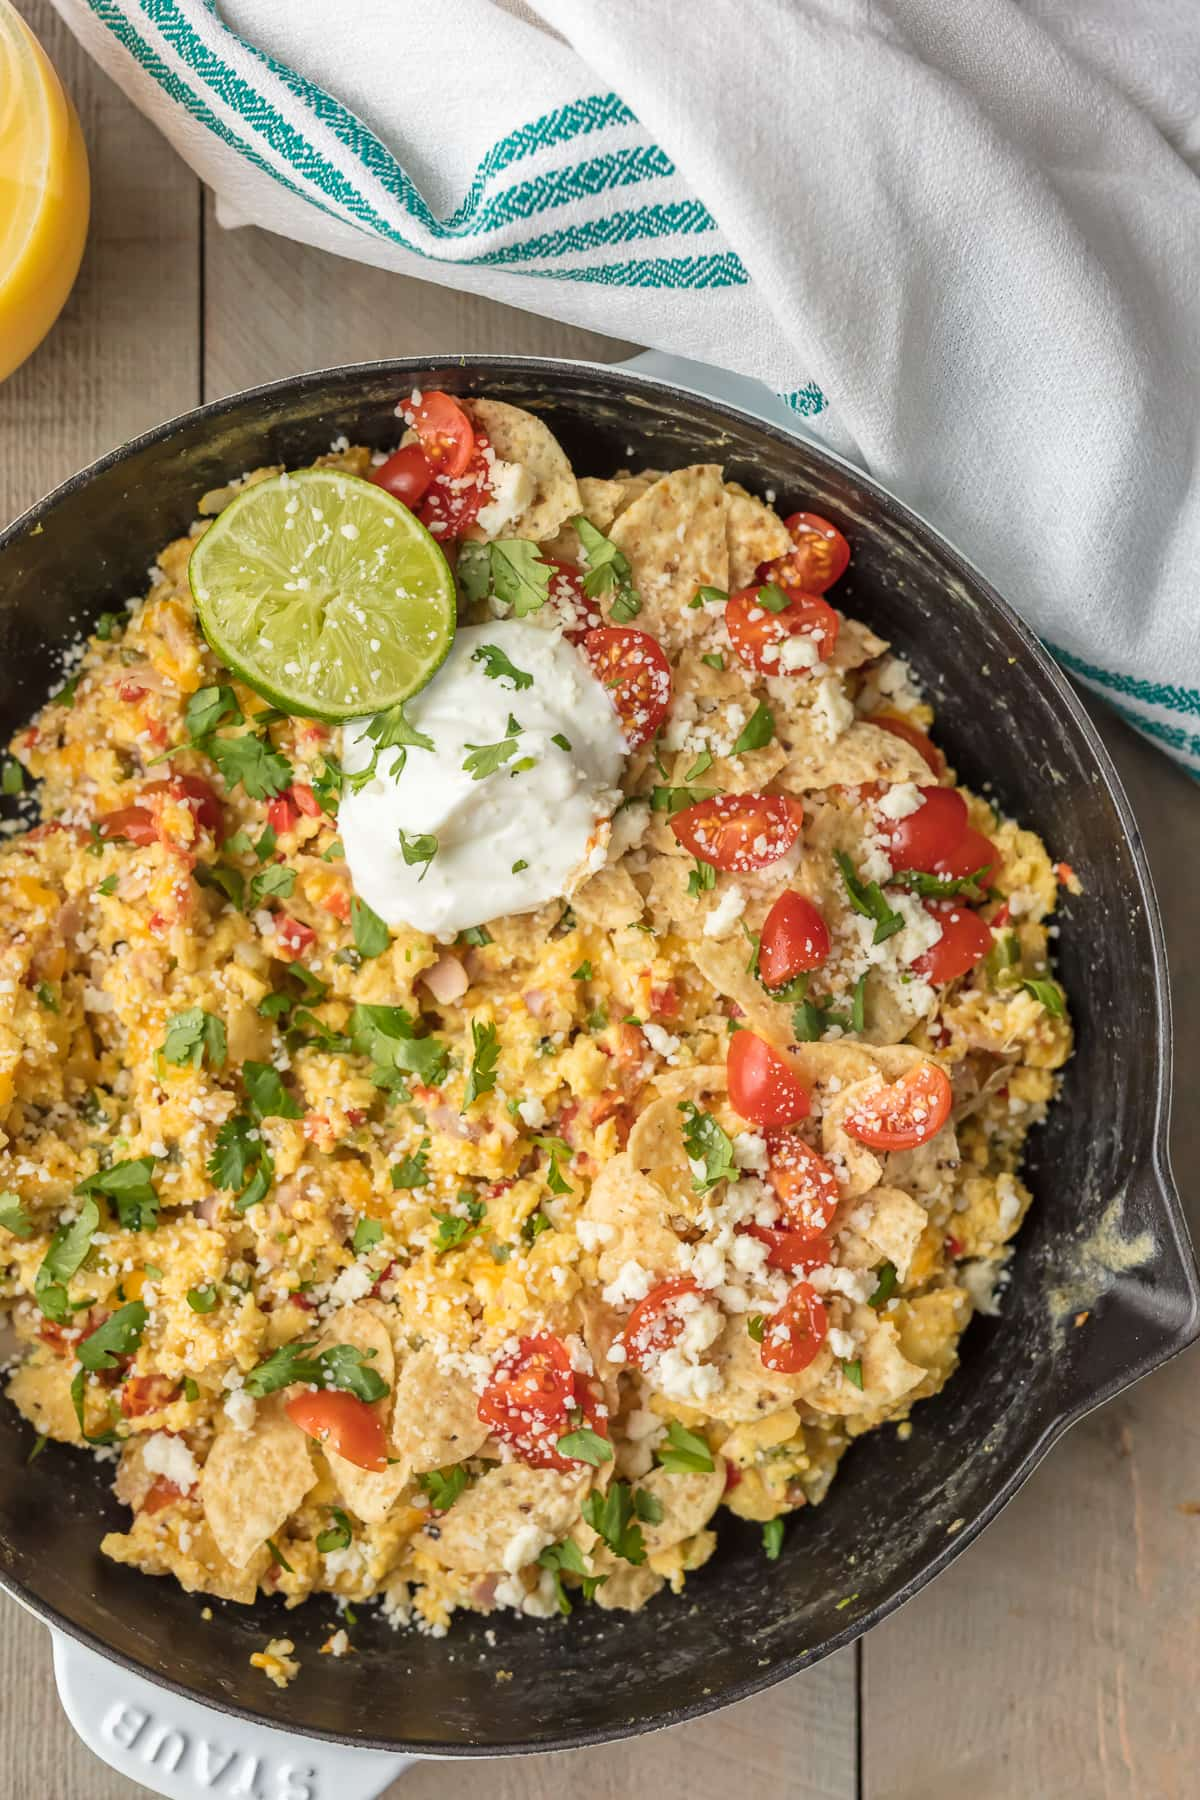 Cheesy Migas: eggs, tortilla chips, tomatoes, cheese, peppers, and more